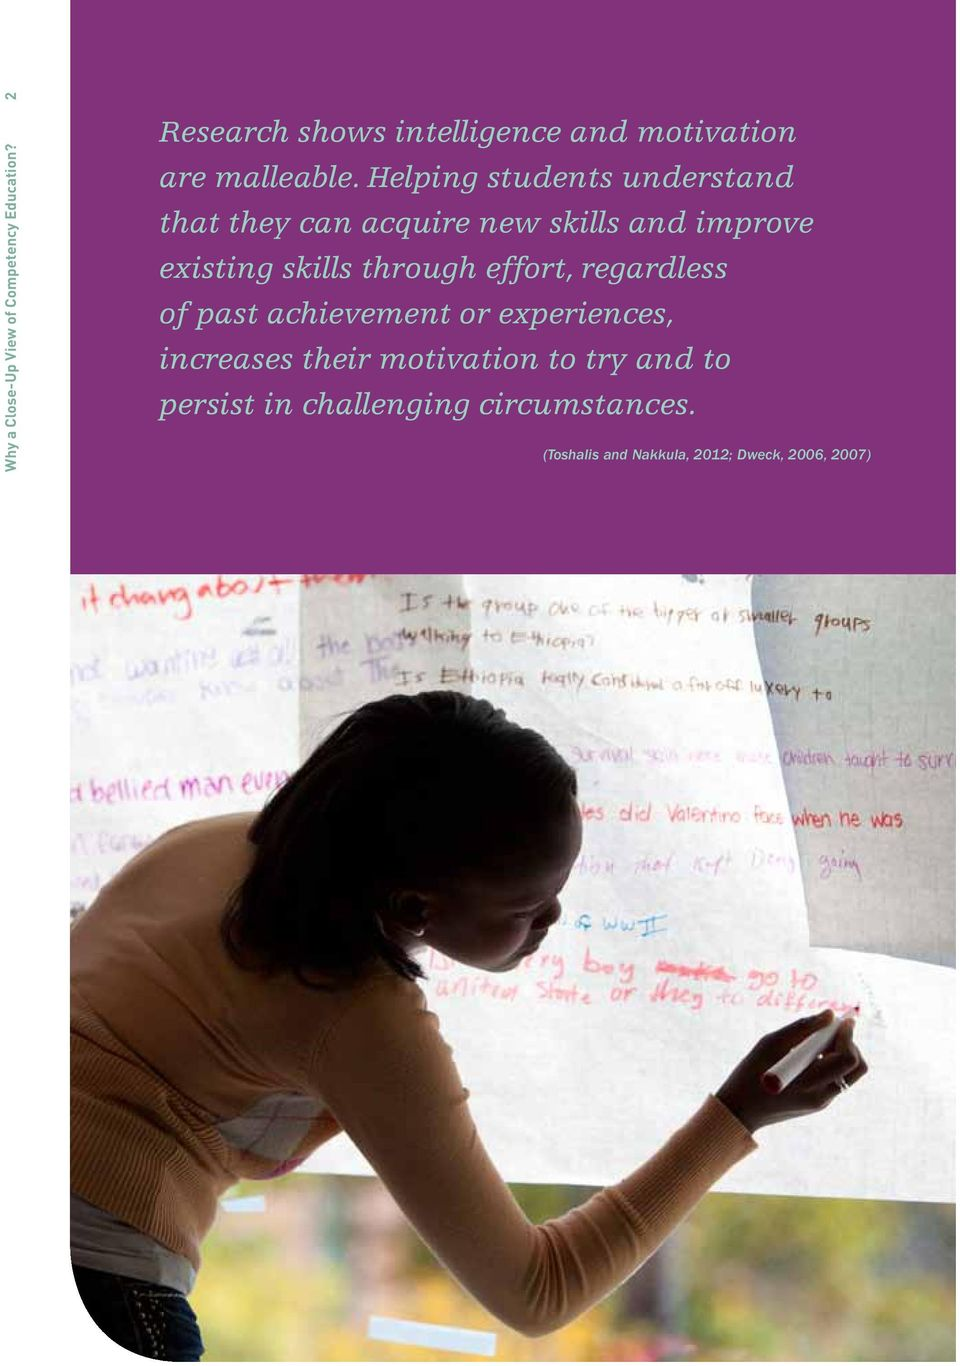 Helping students understand that they can acquire new skills and improve existing skills